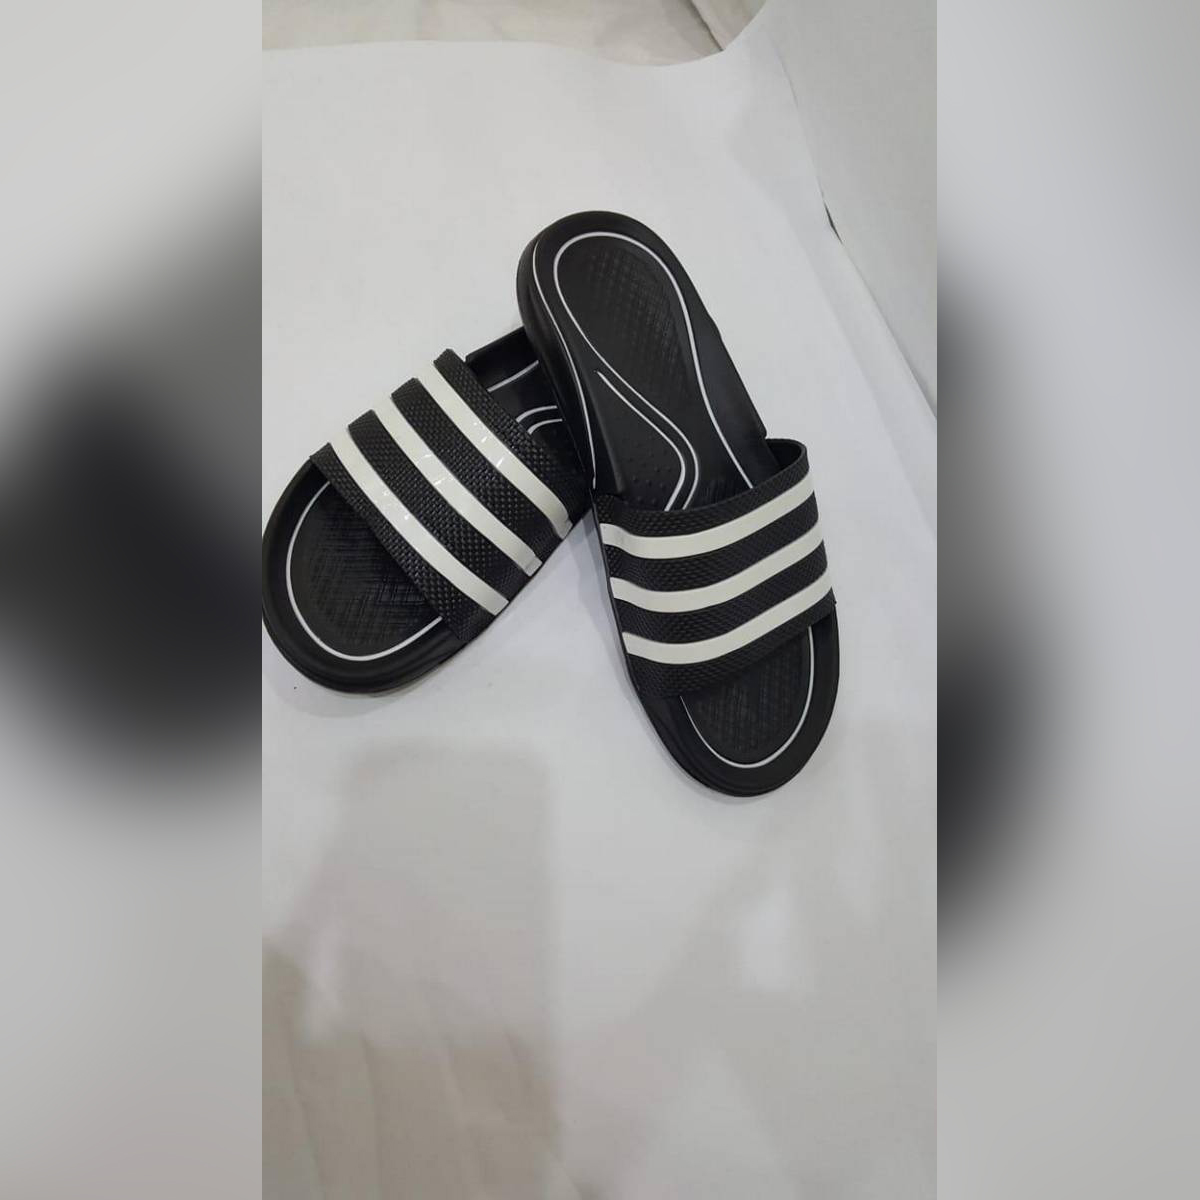 ATTAMAA CASUAL CHAPPAL FOR MEN FLIPFLOP BLACK IN COLOUR LATEST DESIGN WITH BEST QUALITY